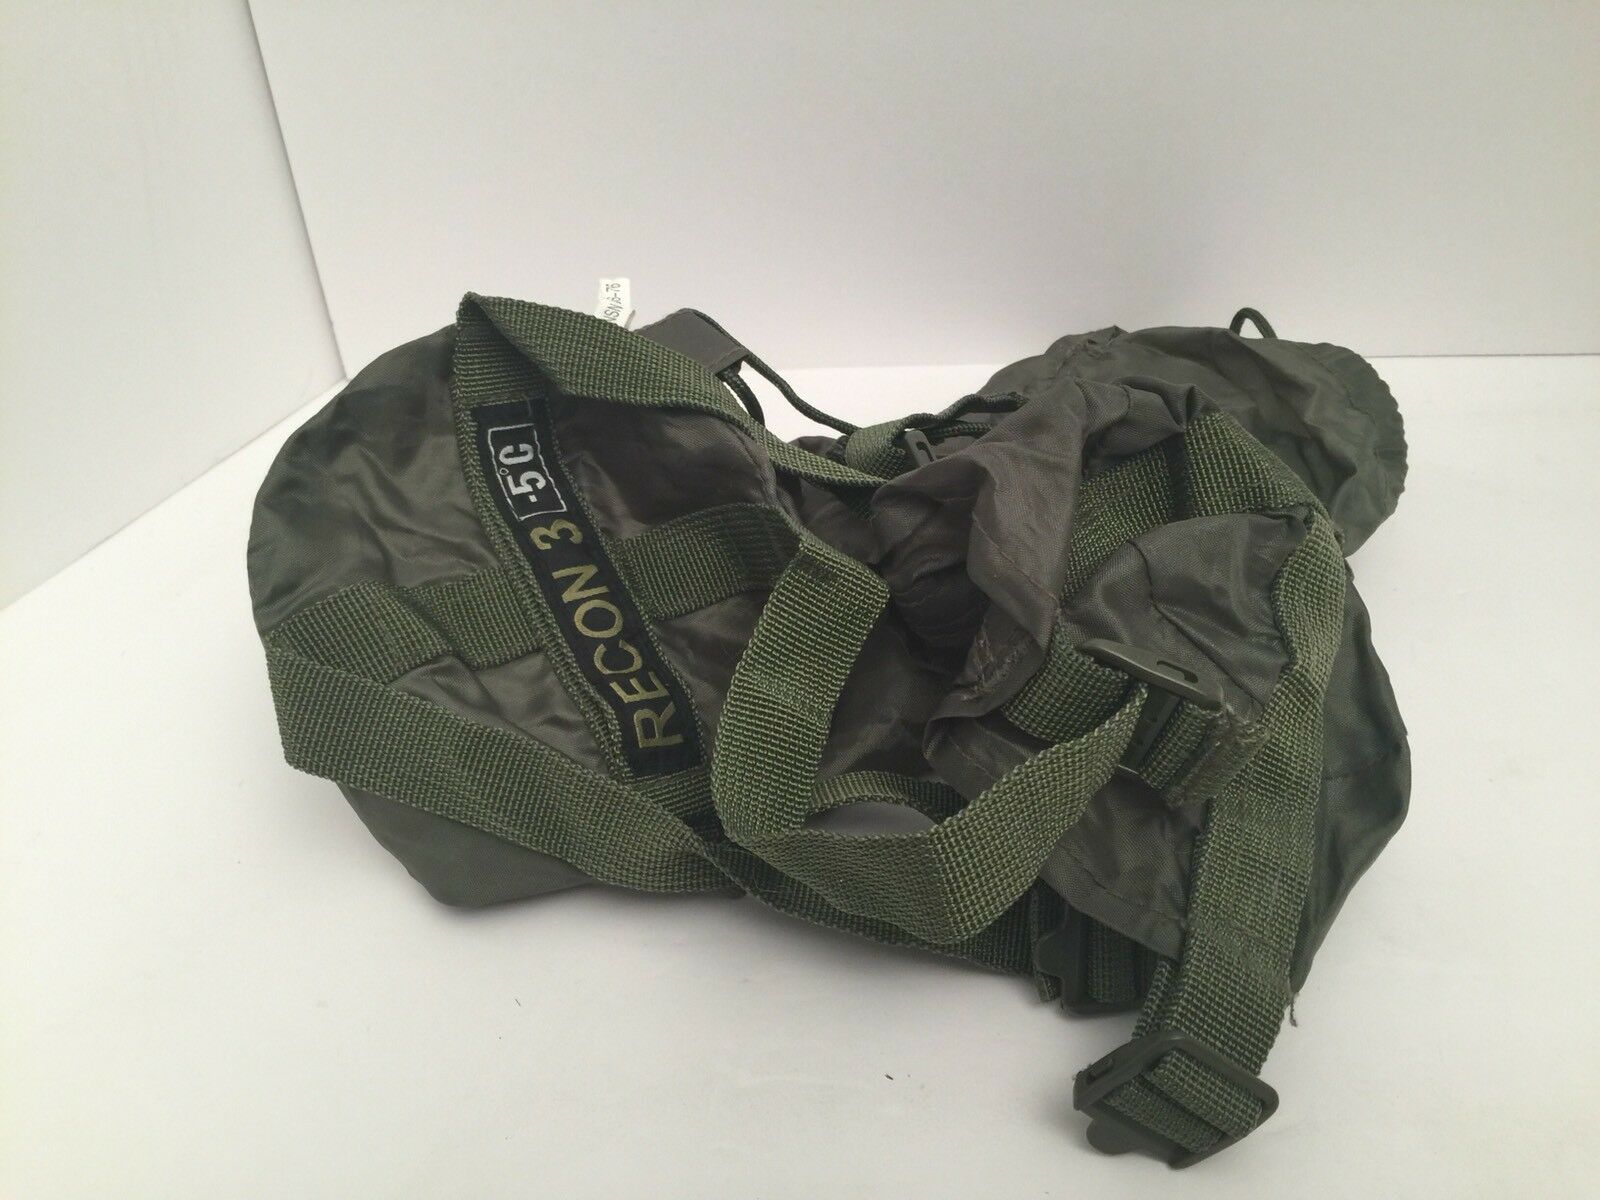 Recon 3 Sleeping Bag CASE -5 C Military Spec  Tactical GREEN 5 Degree  70% off